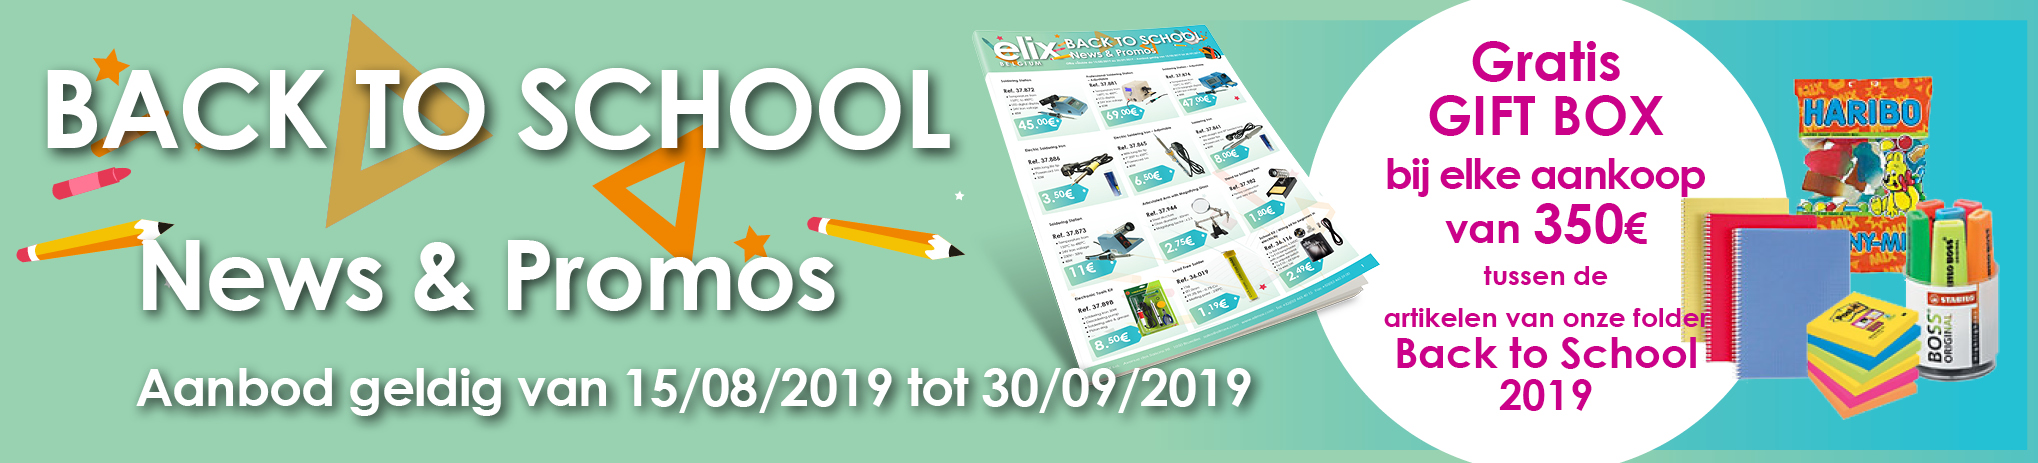 Elimex Back to school 2019 NL